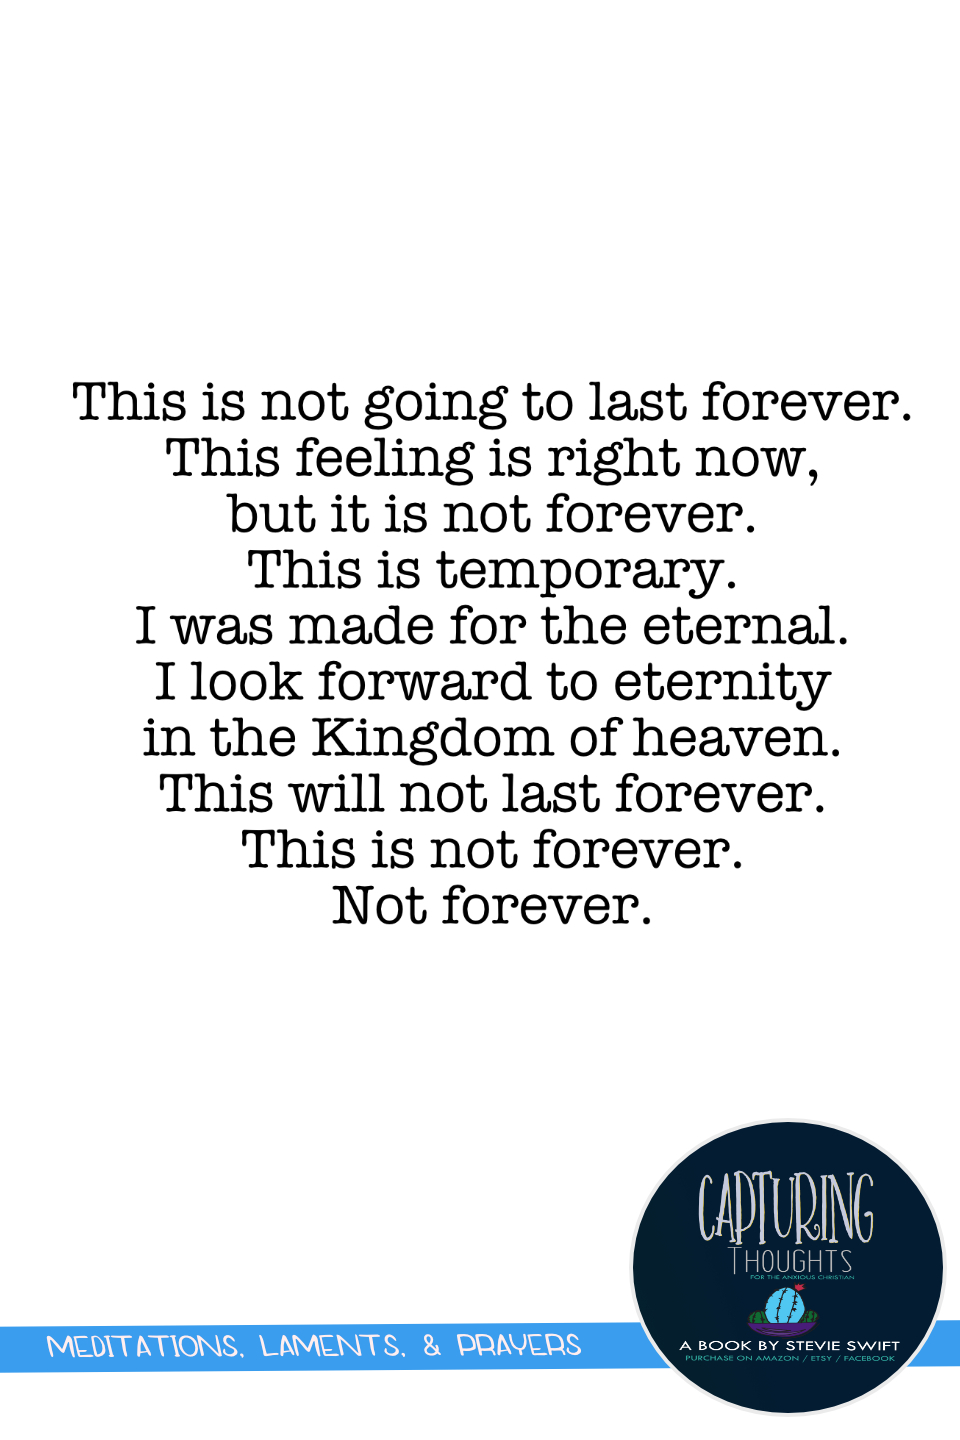 this is not going to last forever. this feeling is right now, but it is not forever. this is temporary. i was made for the eternal. i look forward to eternity in the kingdom of heaven. this will not last forever.